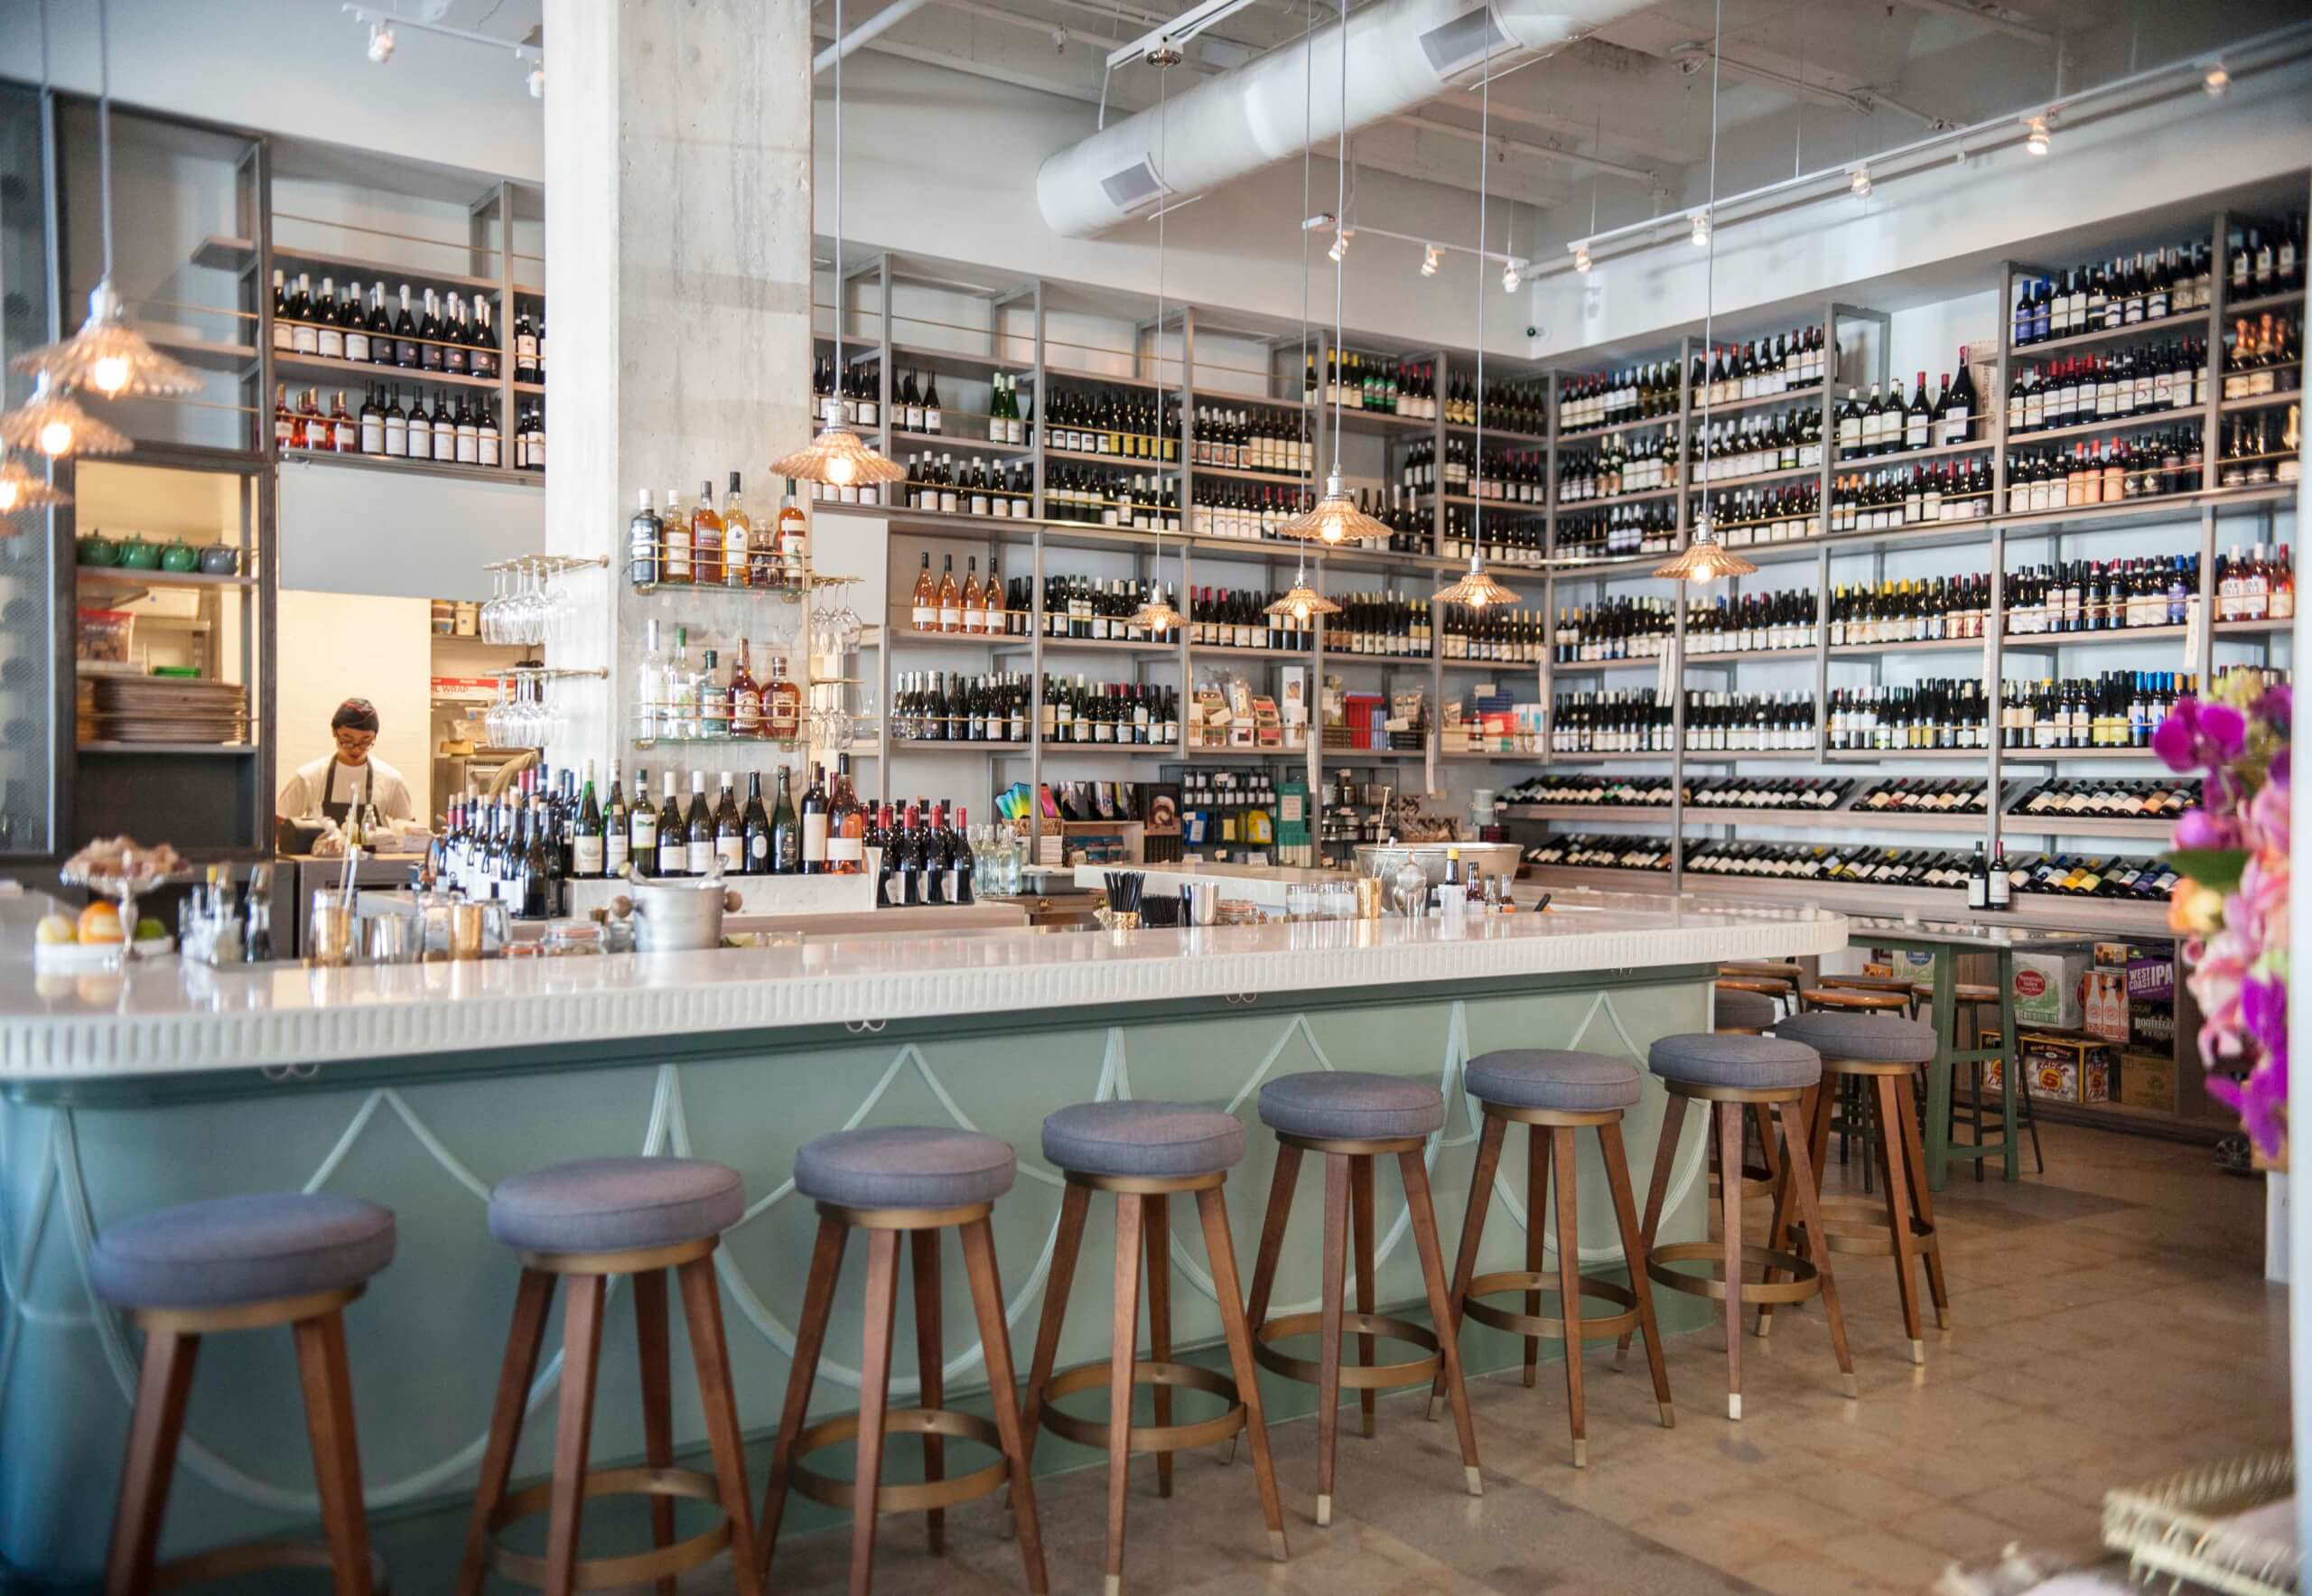 Esters Santa Monica Review, Esters wine shop Review, Esters los angeles Review